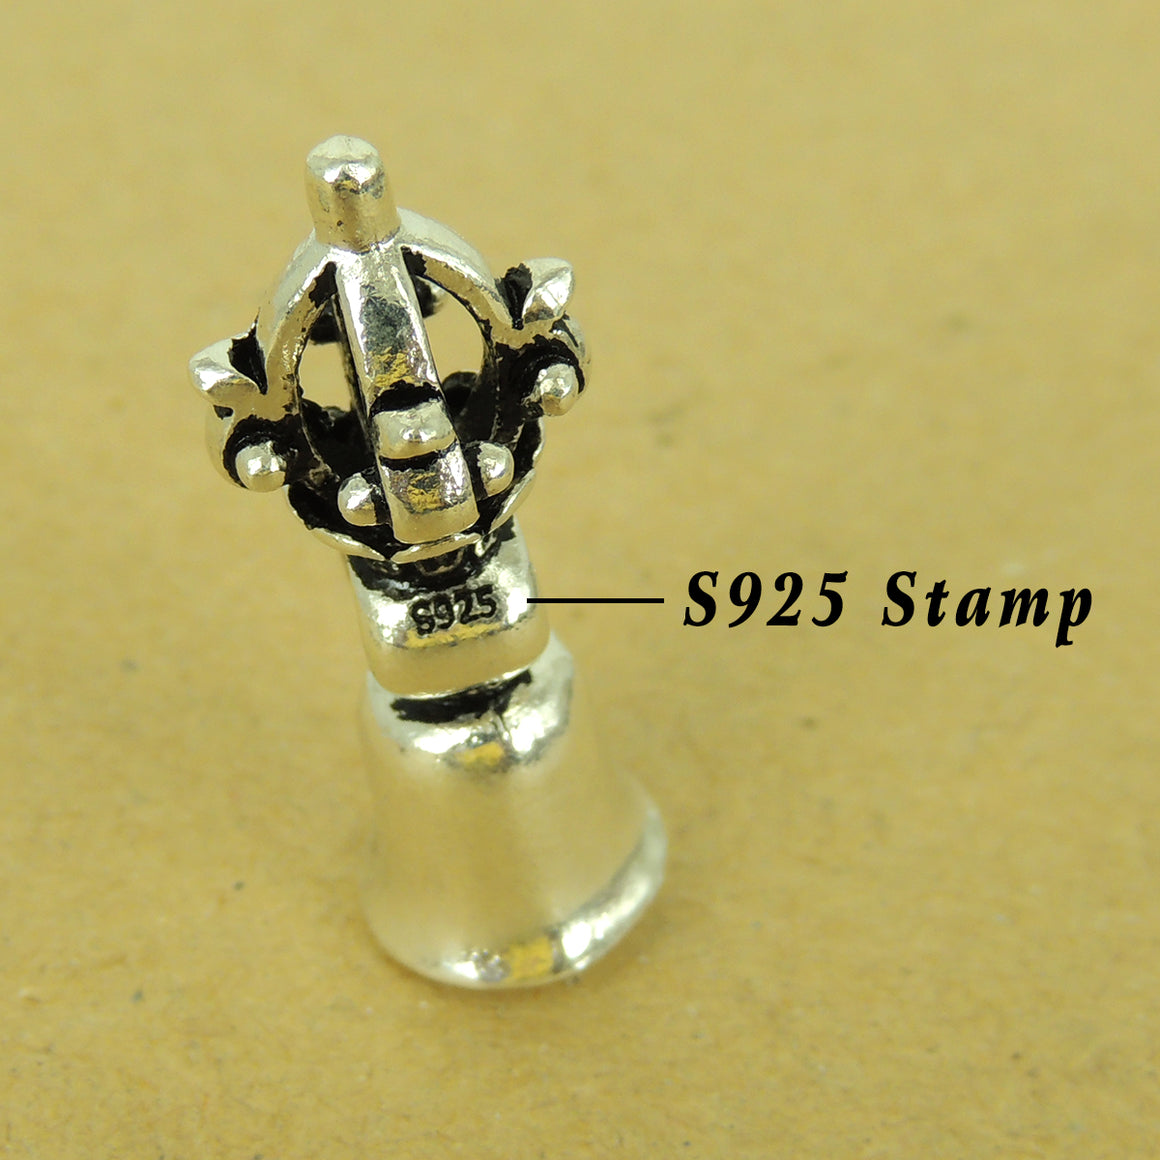 1 PC Buddhism Prayer Bell Pendant & Charm - S925 Sterling Silver WSP550X1